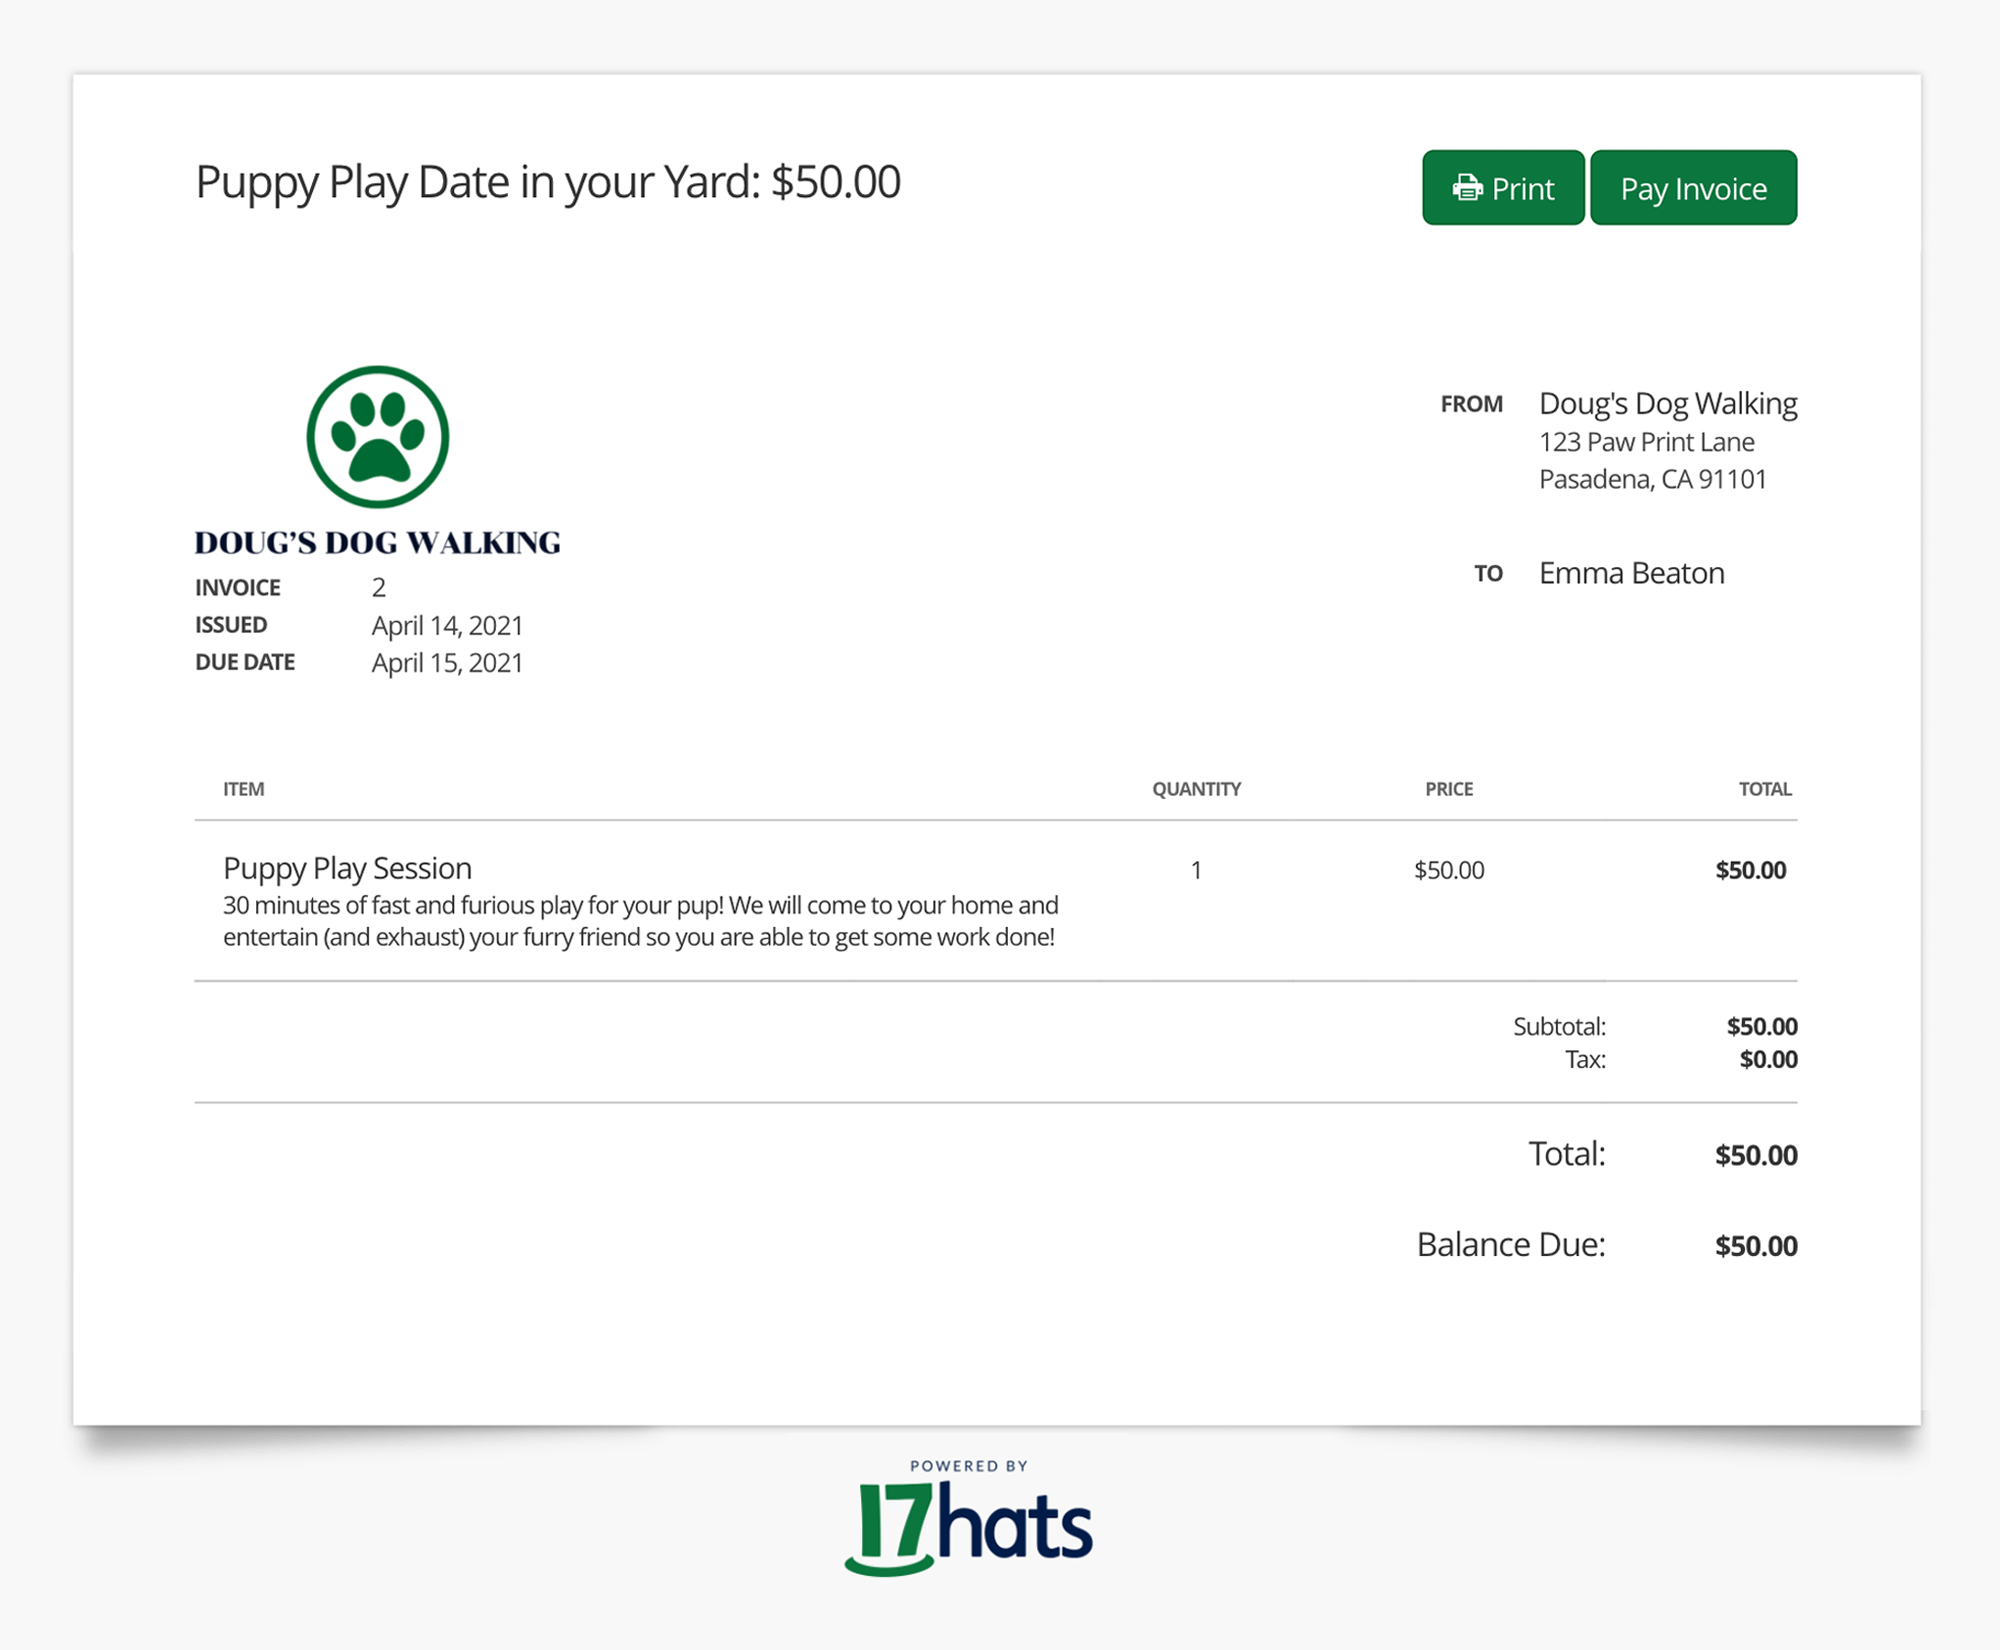 17hats Live Invoice For Level One